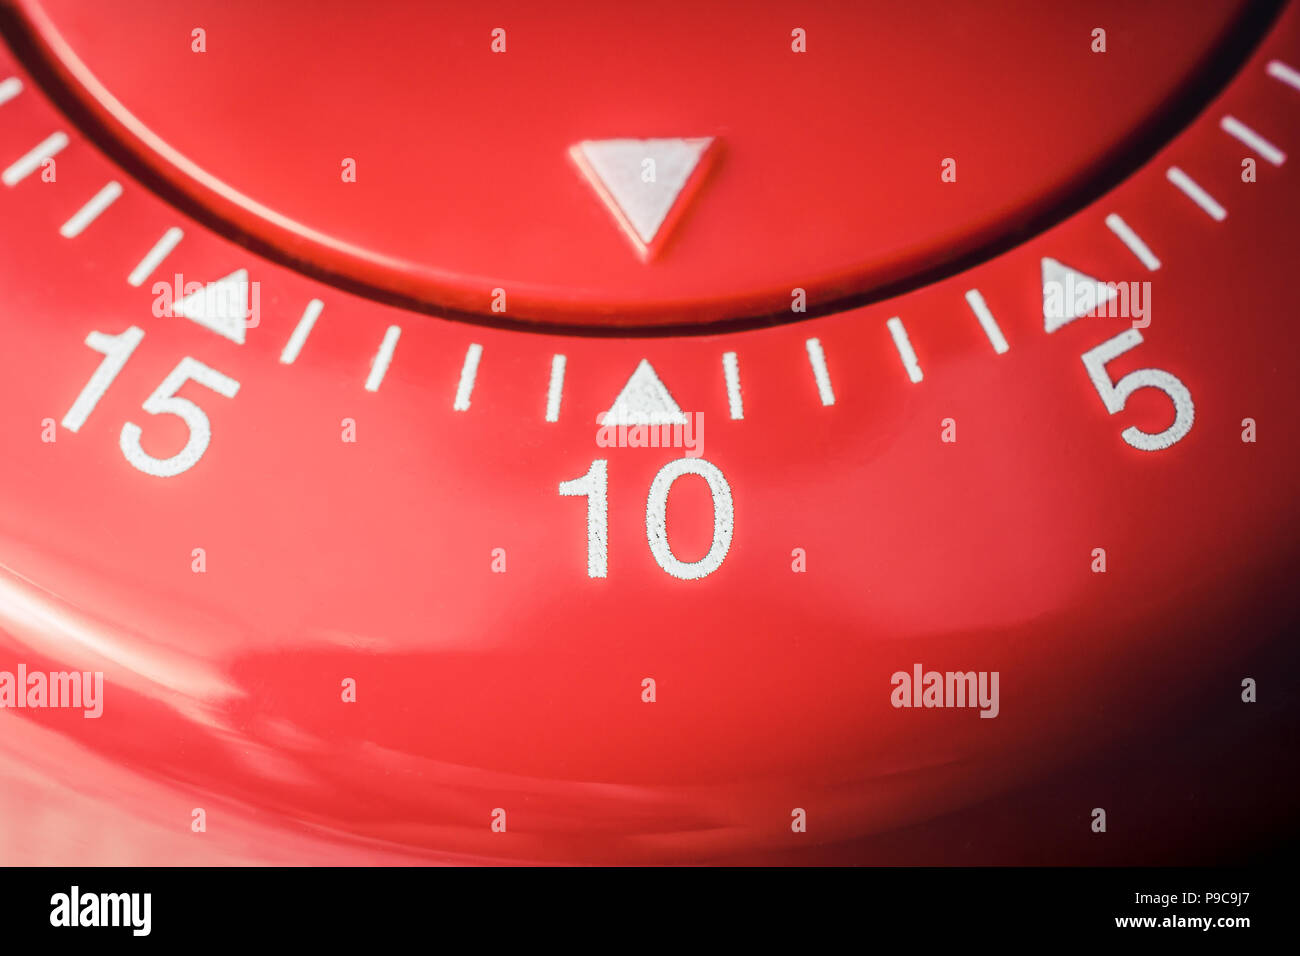 10 minutes macro of a flat red kitchen egg timer stock photo